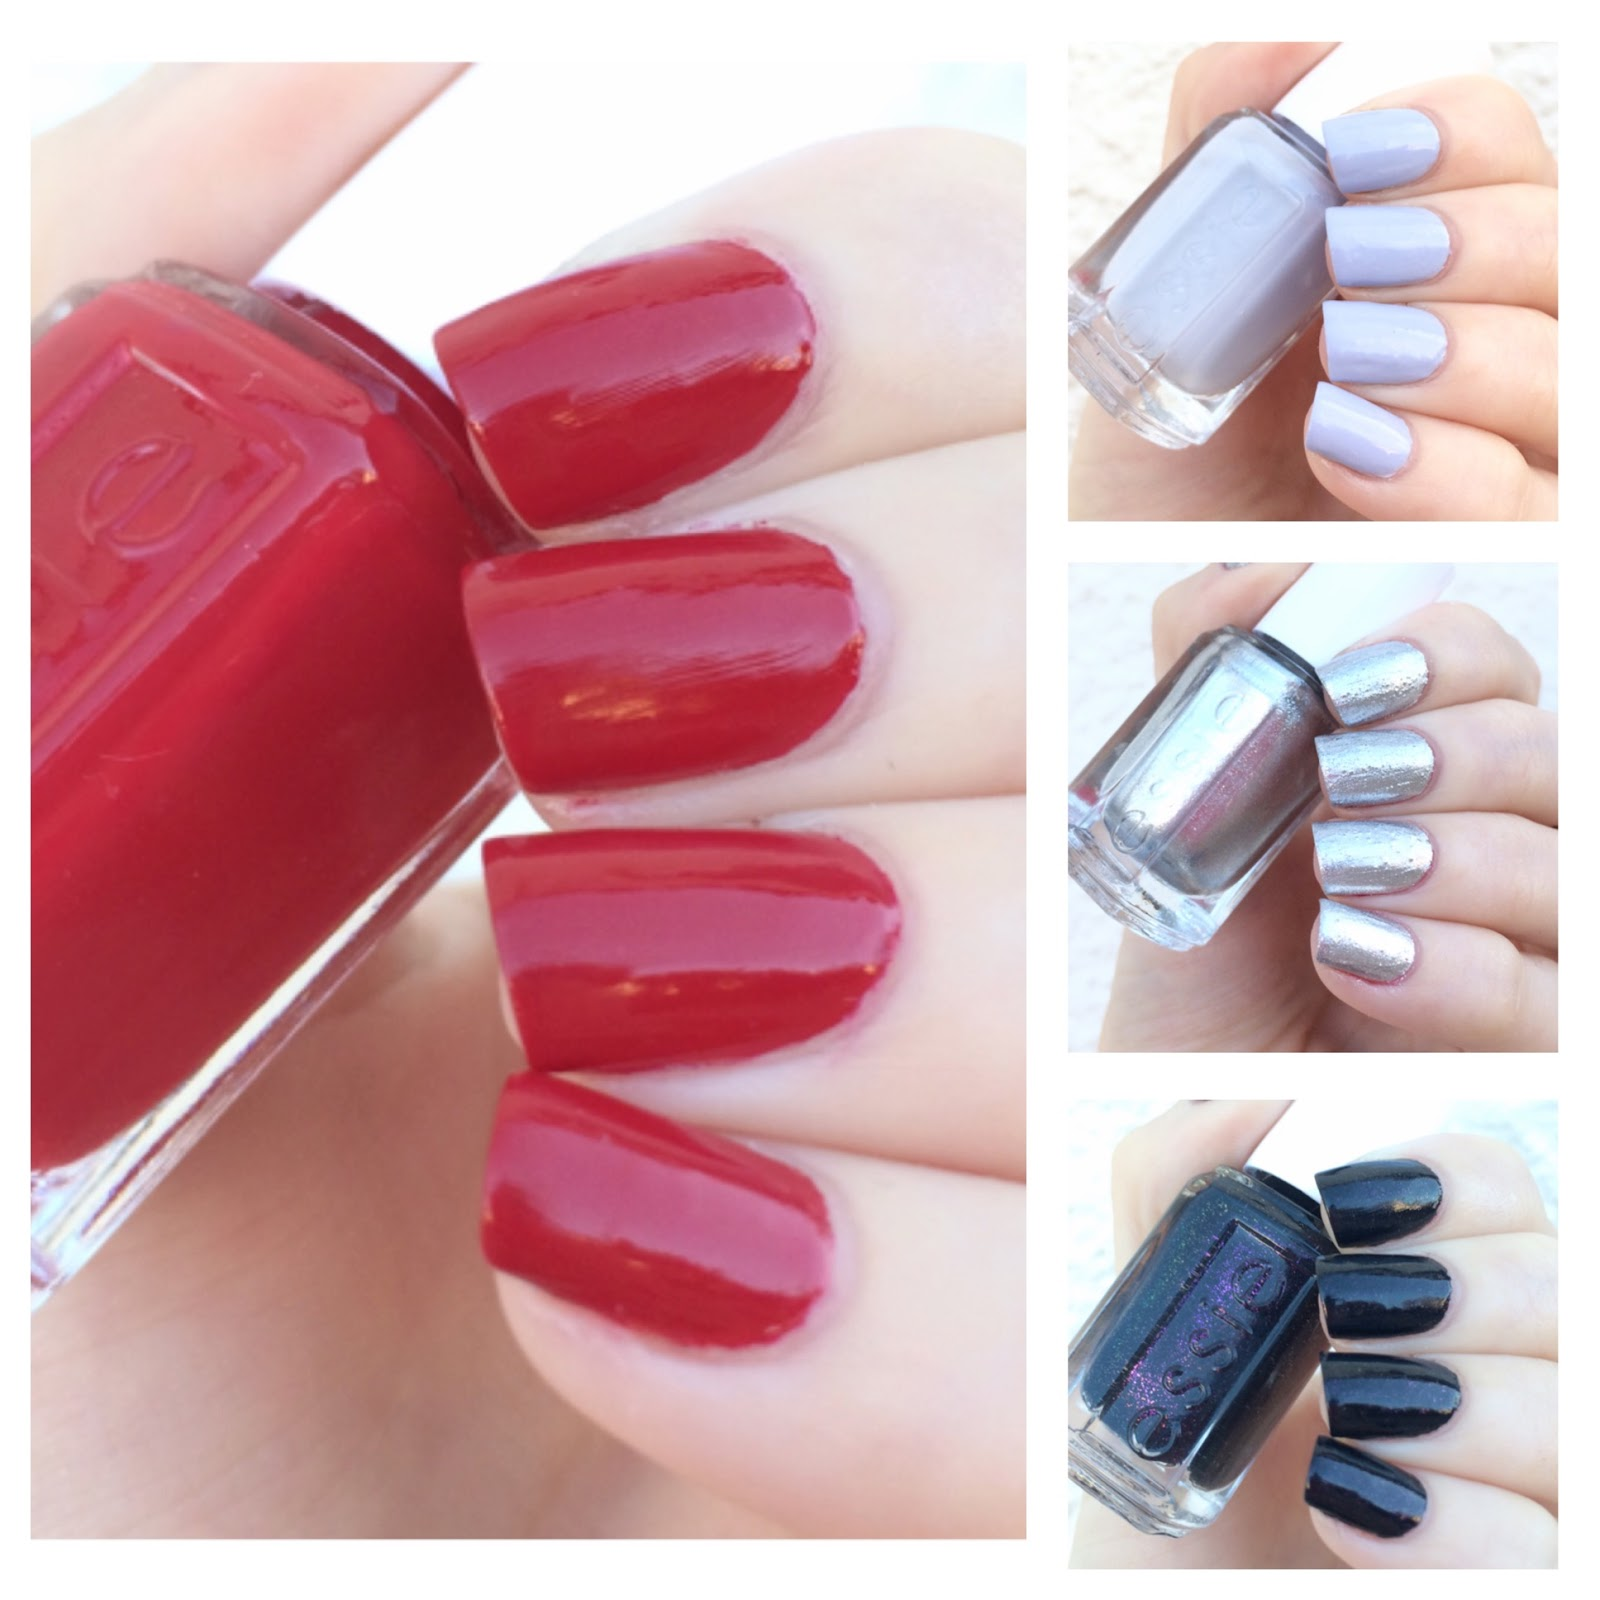 Fact We Re Little Over A Week Into Fall And The Winter Nail Polish Collections Are Already Hitting Shelves Truth If Essie S 4 Pc Mini